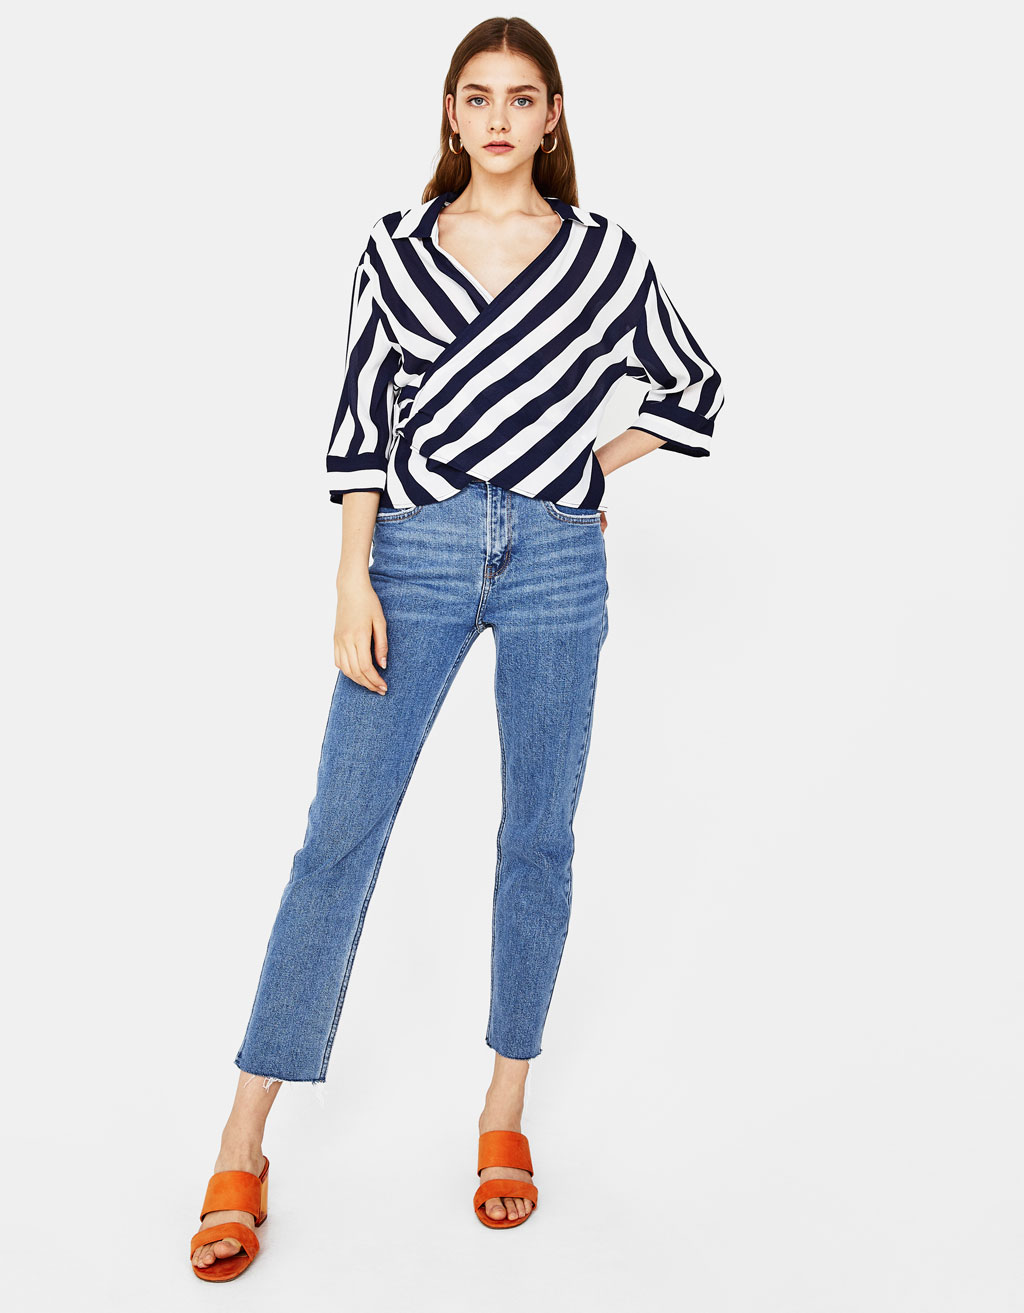 Striped shirt with belt